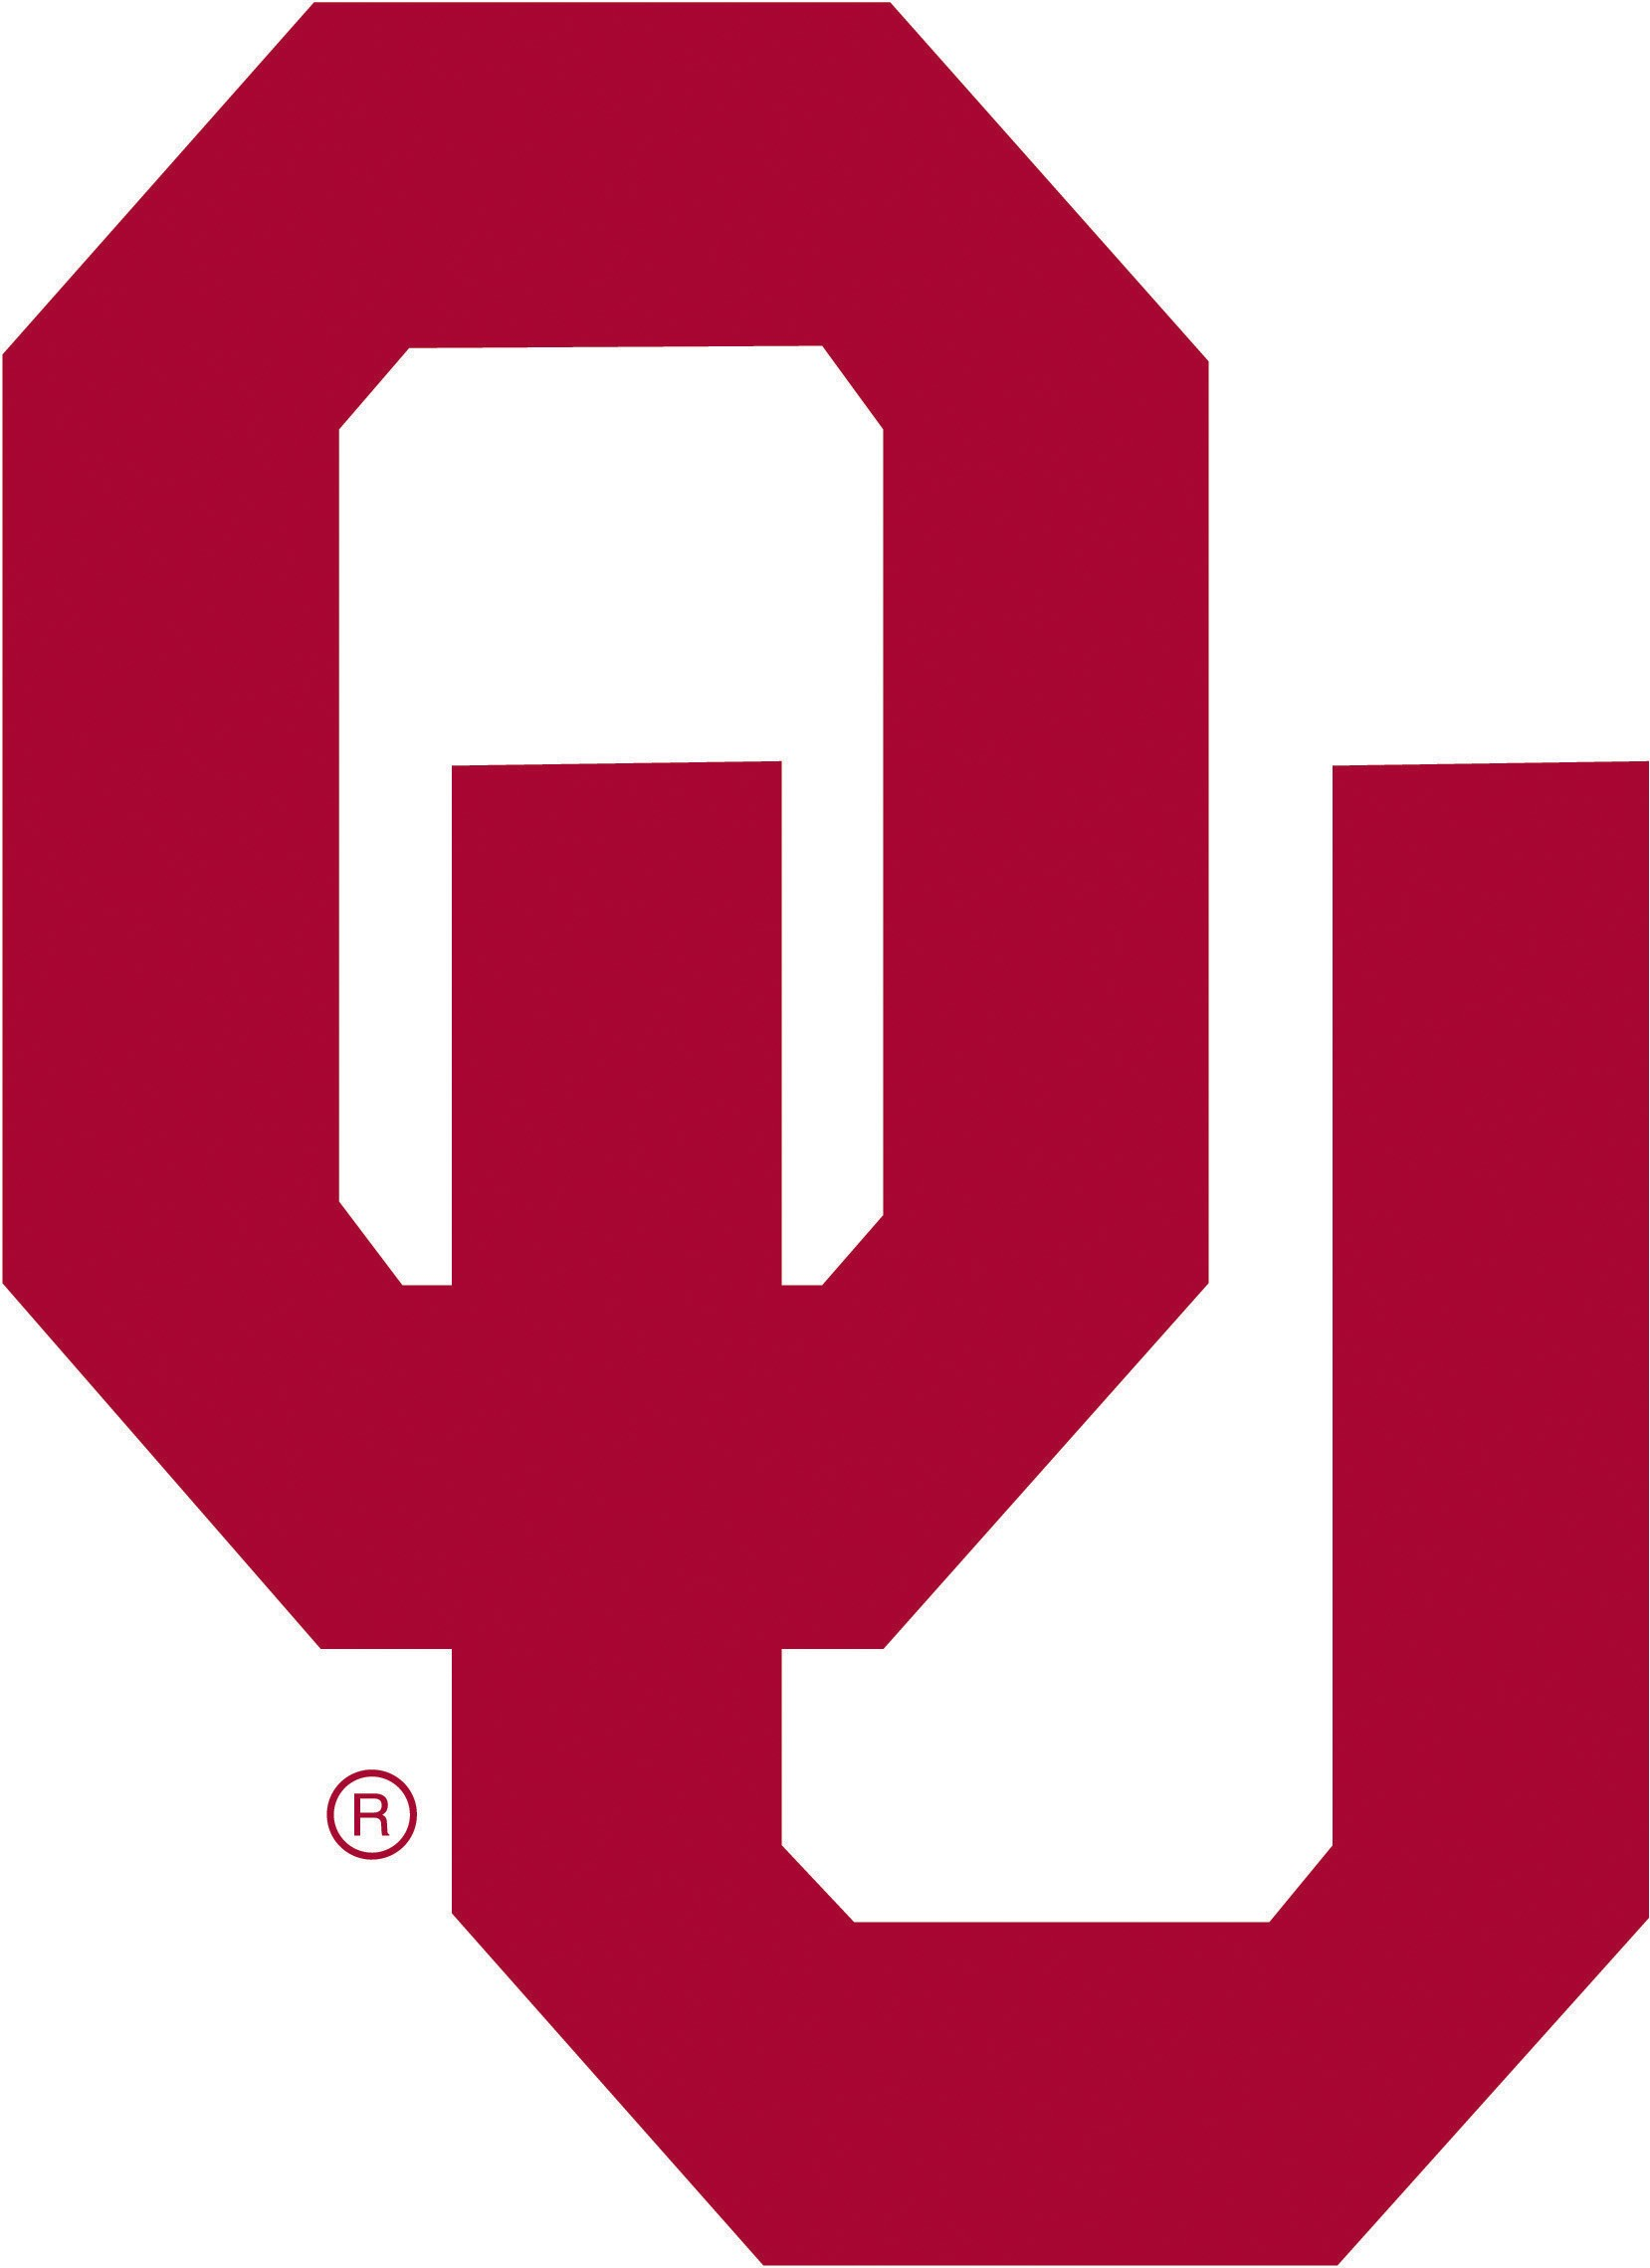 Tours offer students an inside look at the University of Oklahoma